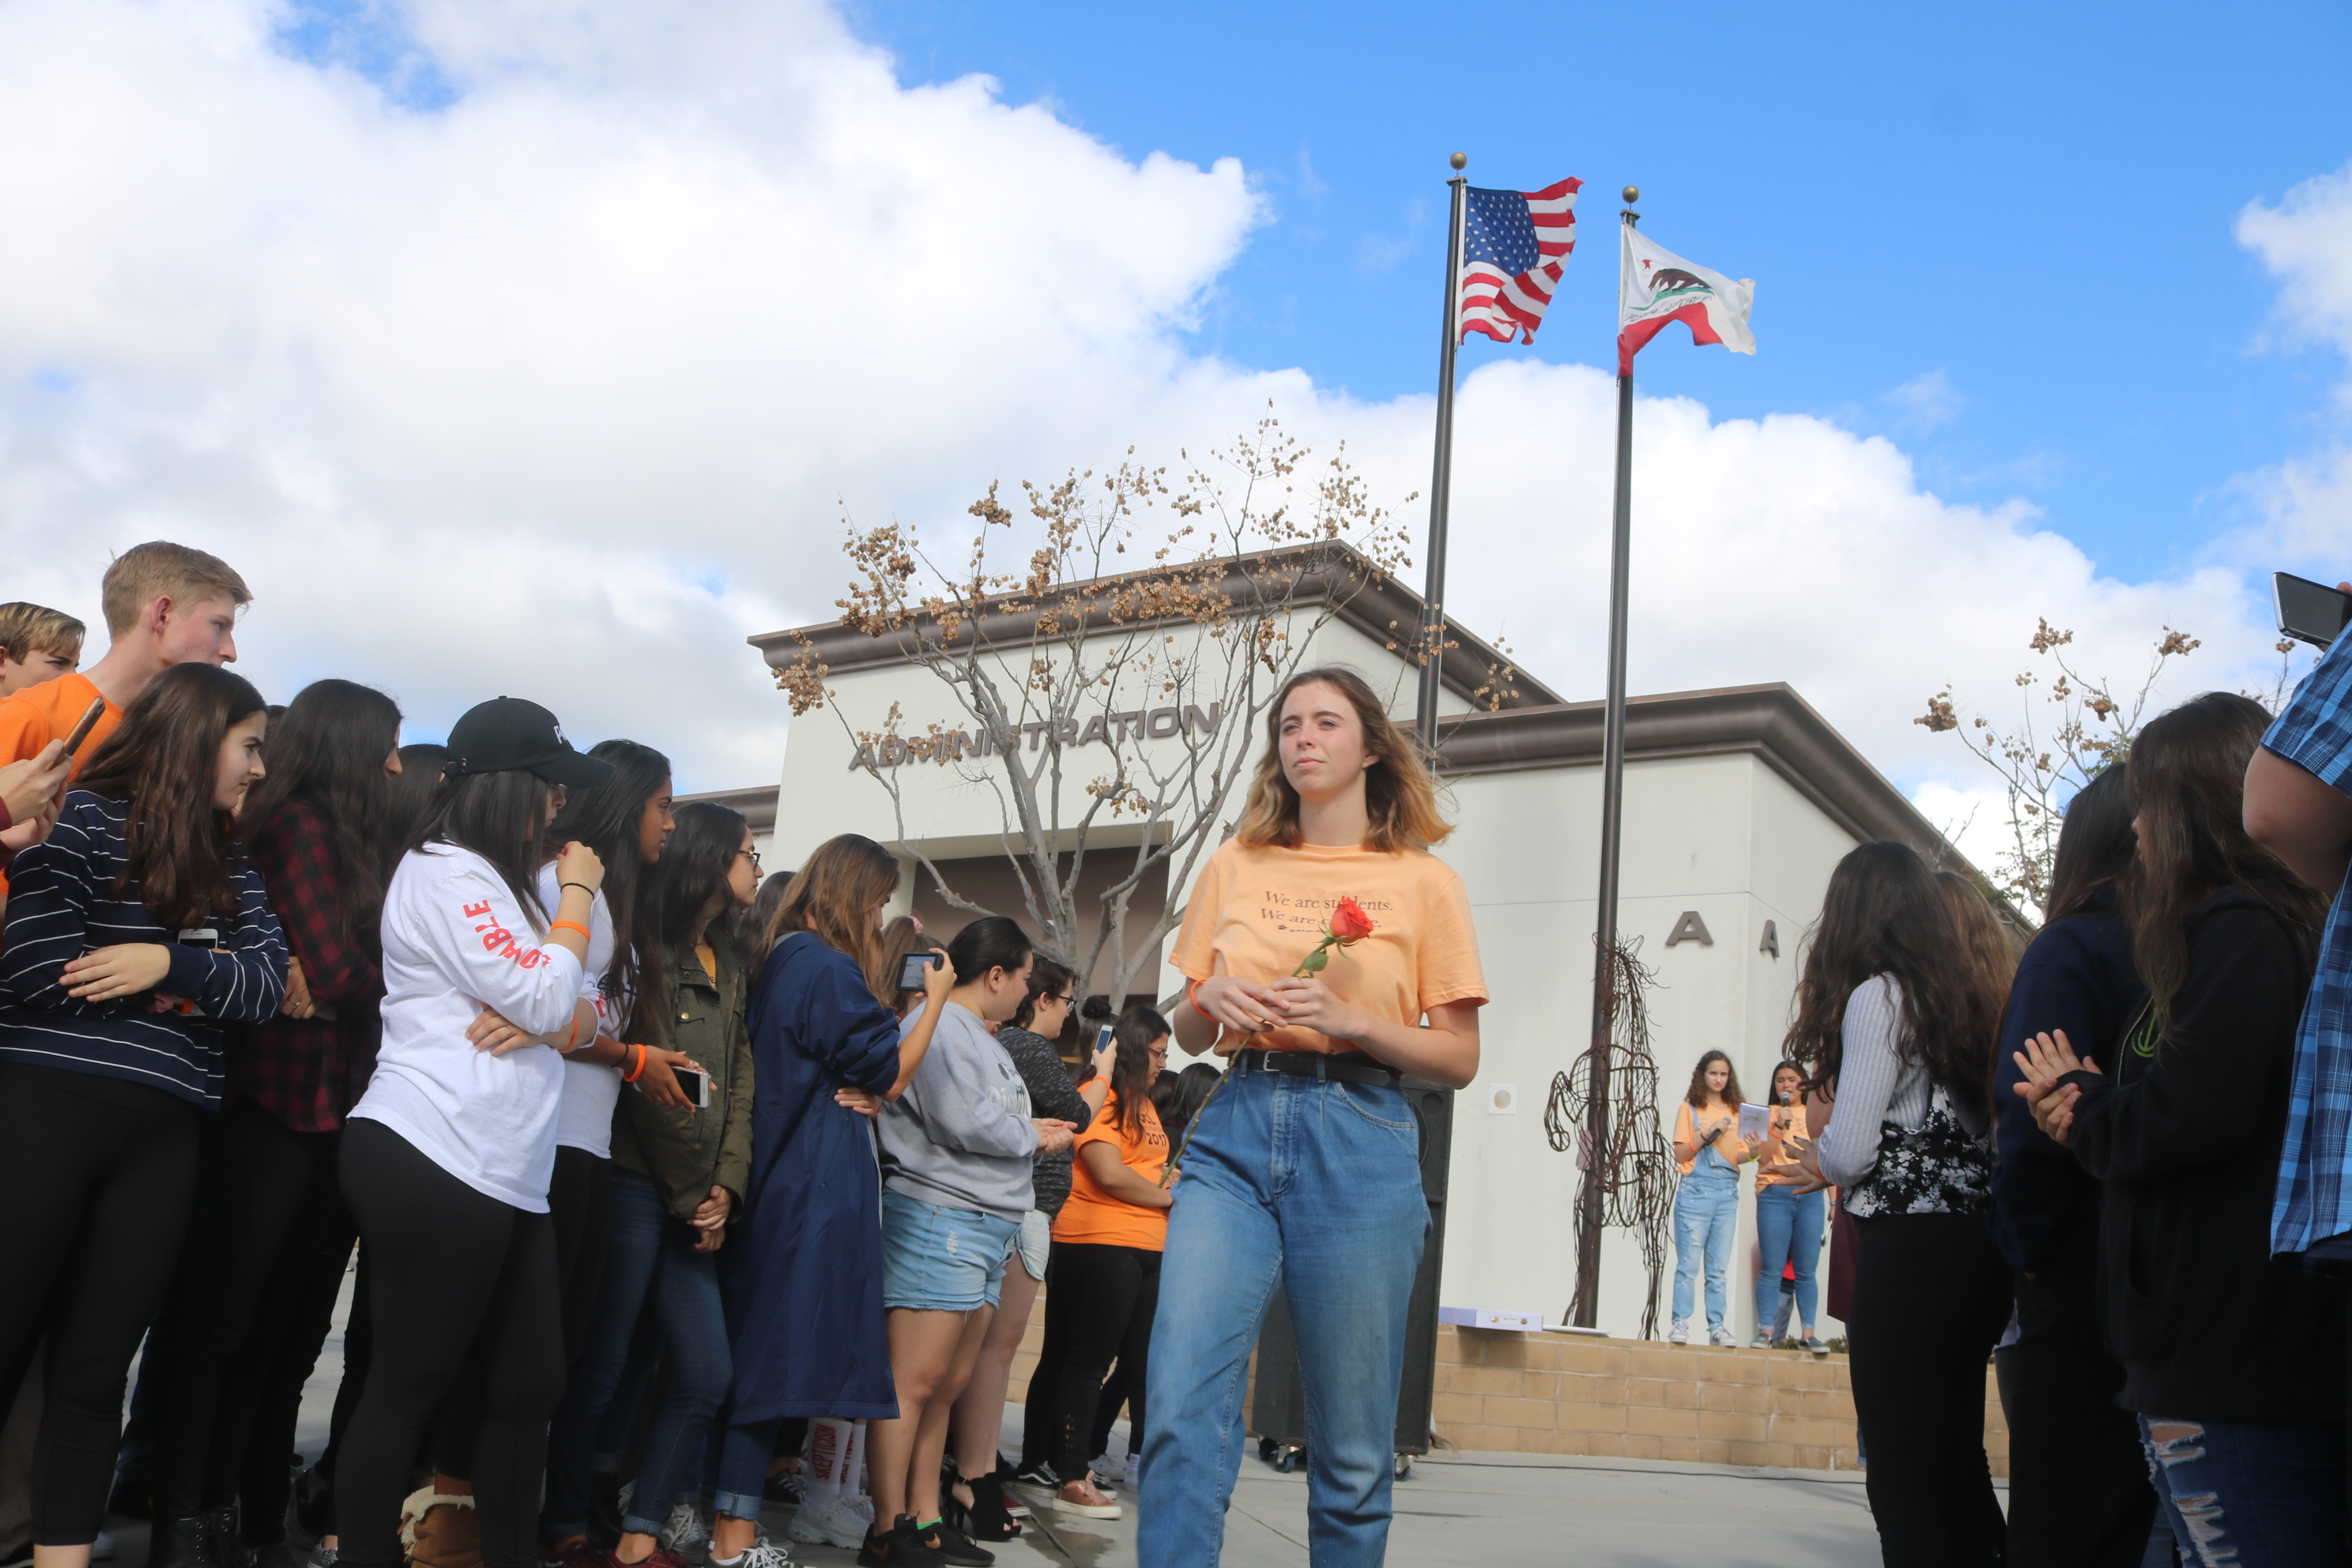 A SJHHS student carries a flower to the desk memorial for Parkland, Florida victims.